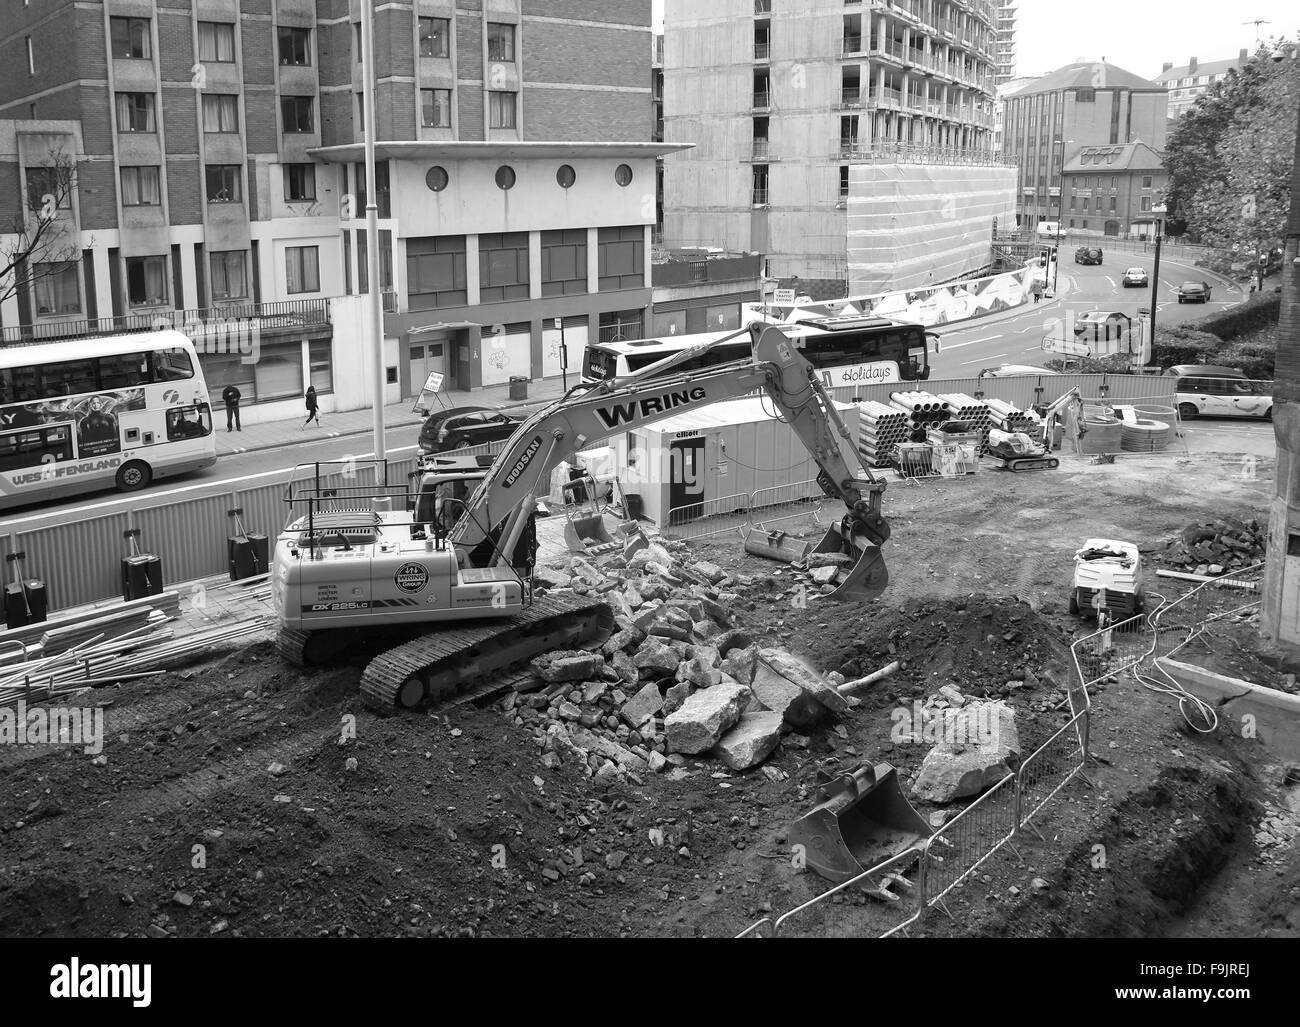 Machines at work on a construction project in the centre of the city of Bristol, England, - Stock Image